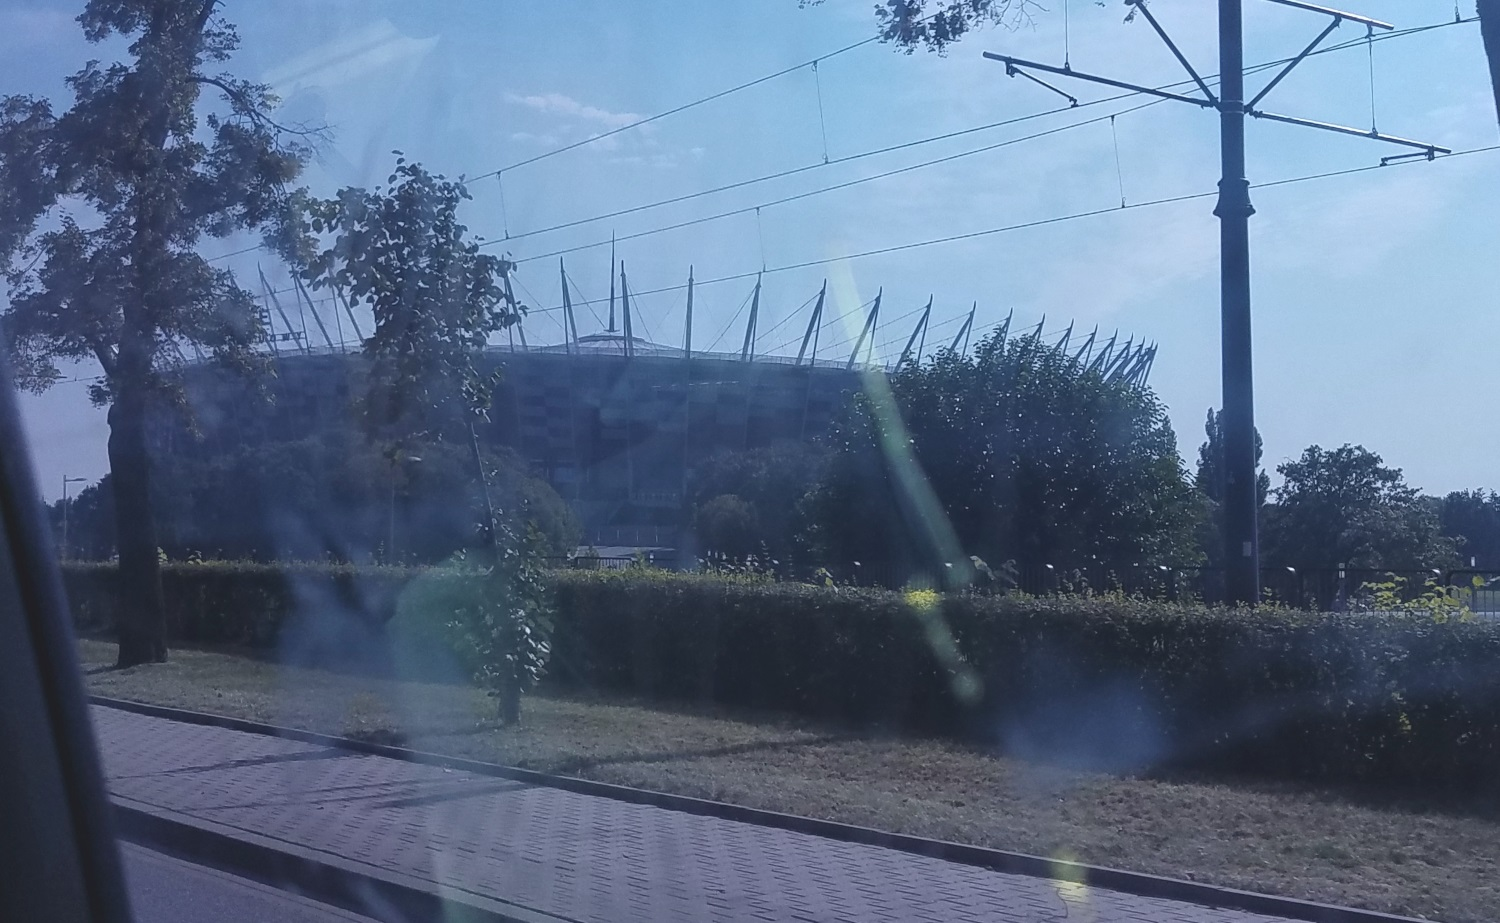 The National Stadium - mostly for soccer games. Finished in time for the 2012 EuroCup here in Warsaw.